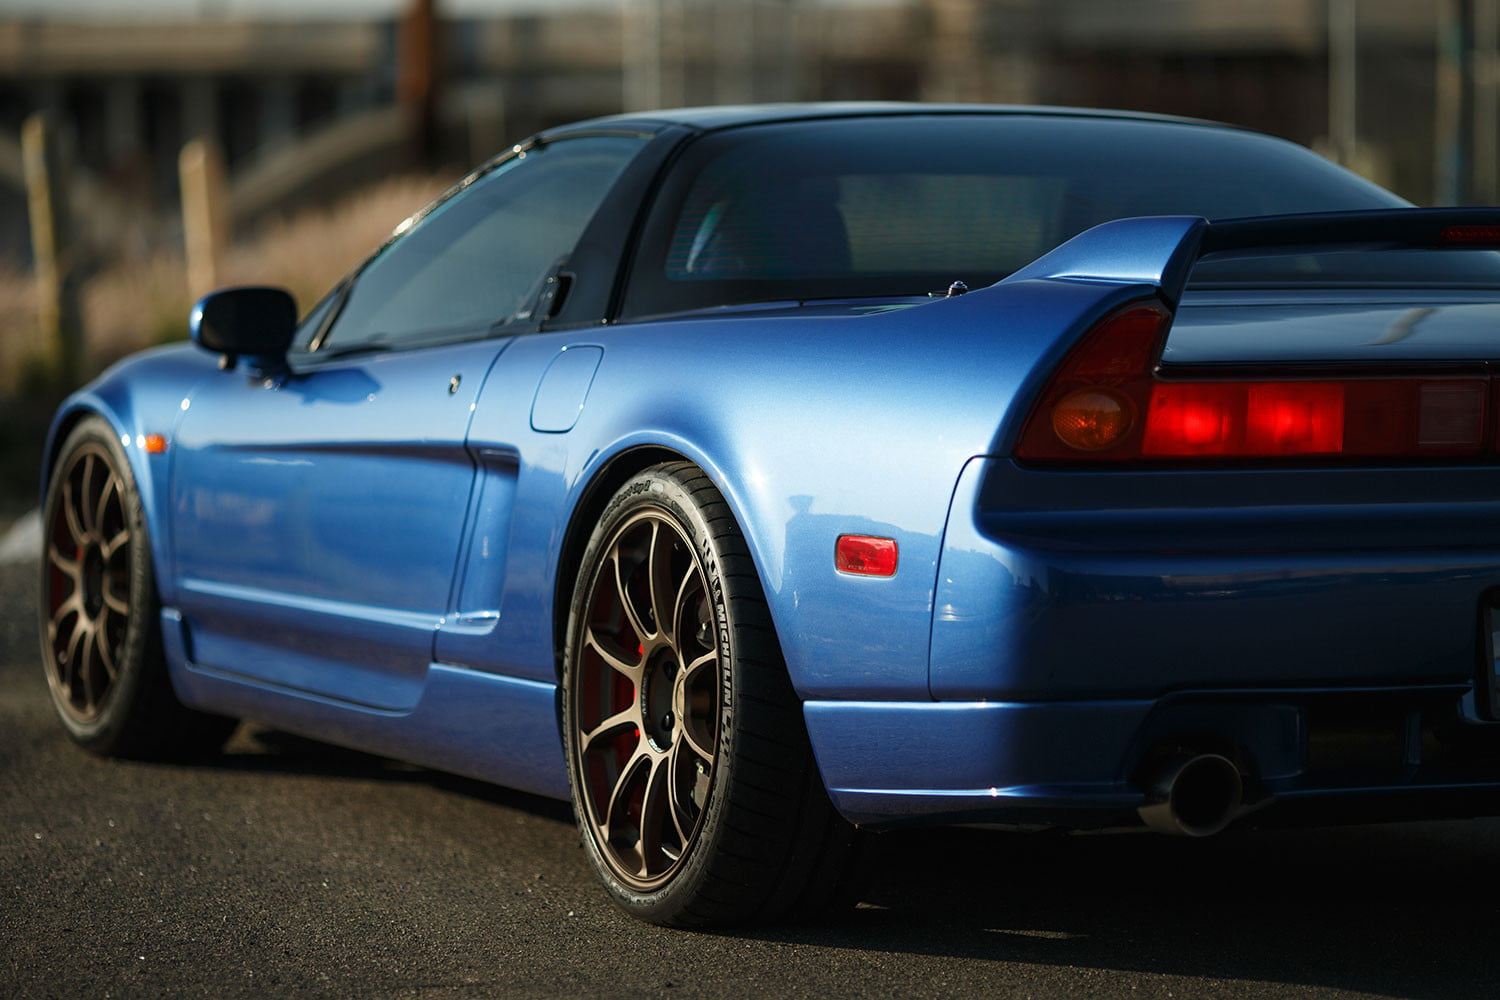 Supercharged 1991 Acura NSX by Clarion Builds | Digital Trends